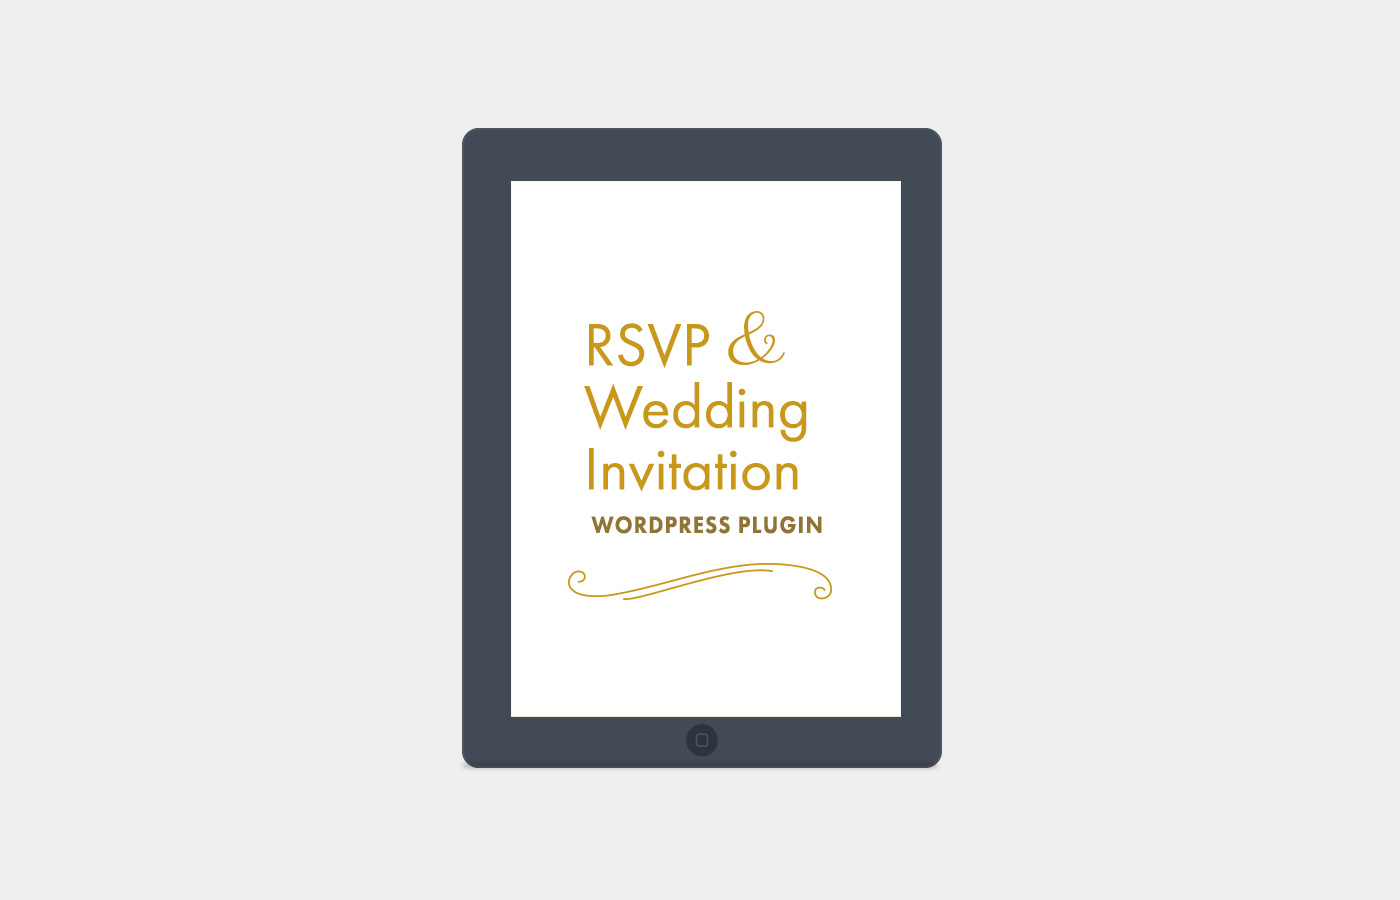 Crafted PixelsRSVP and Wedding Invitation WordPress Plugin ...